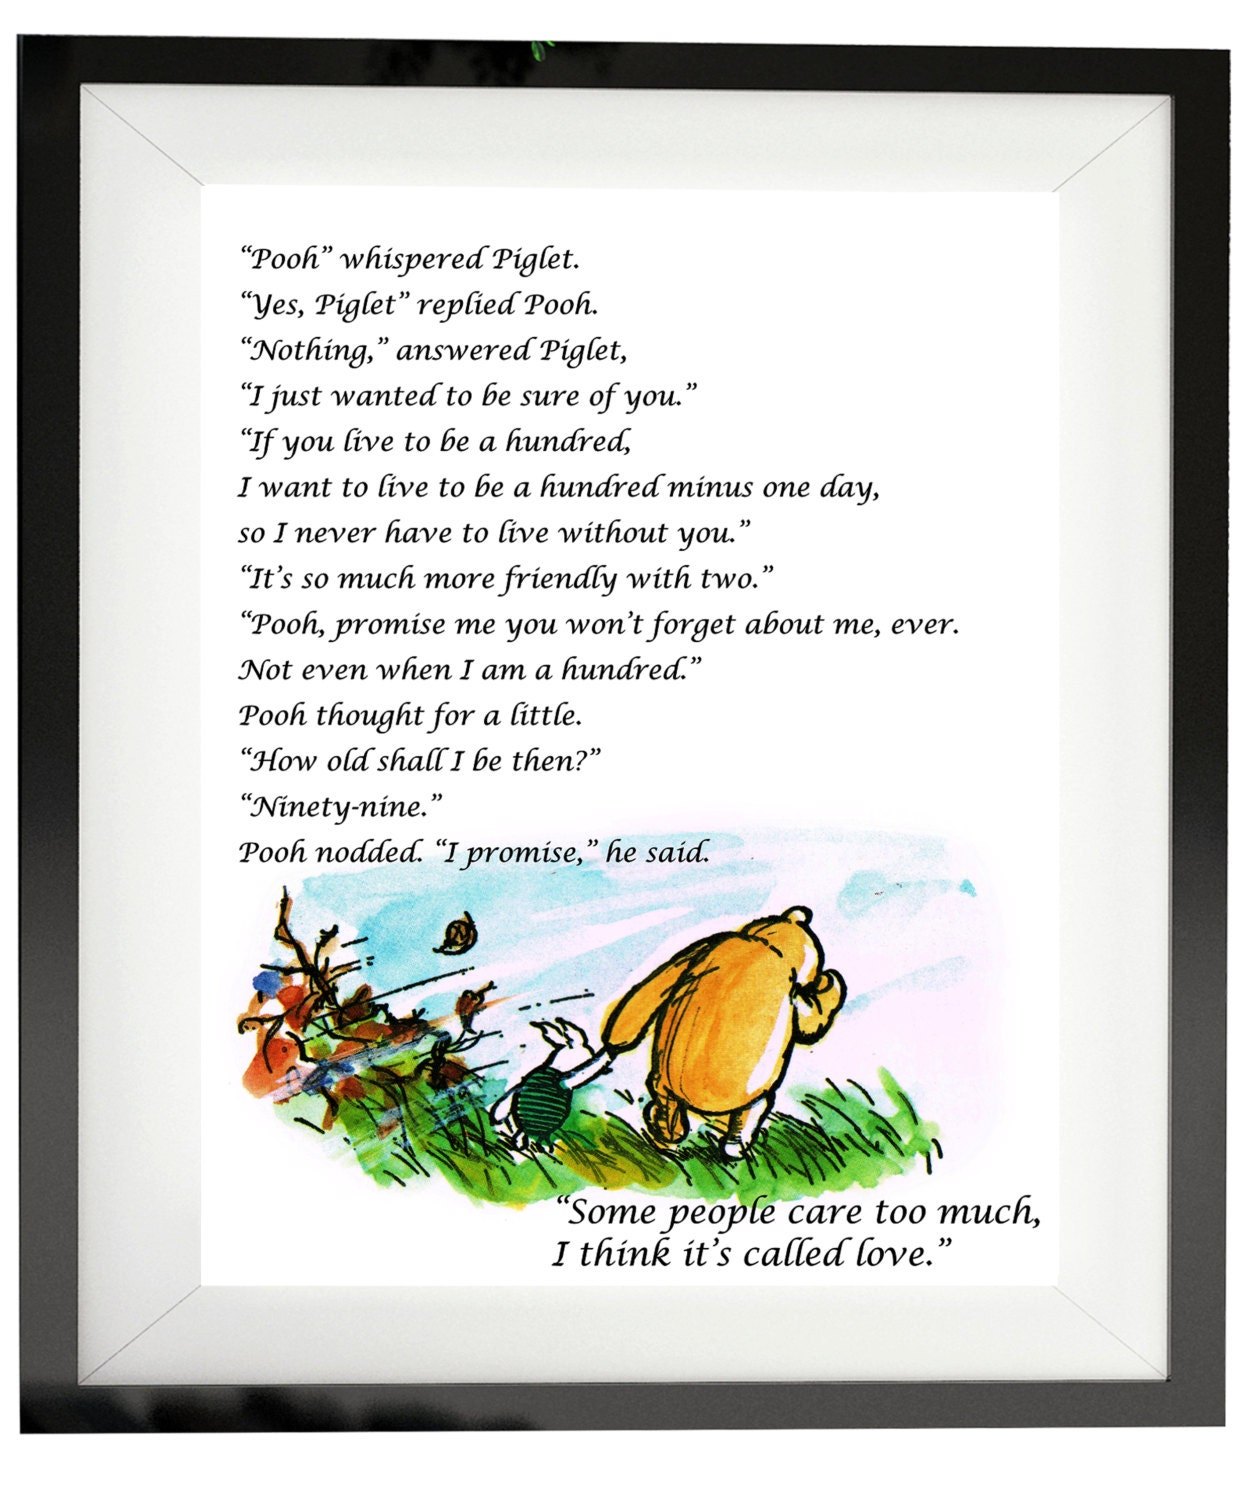 Winnie The Pooh Quote If Ever There Is A Tomorrow: Winnie The Pooh Wedding Love Quotes 'If There Ever Comes